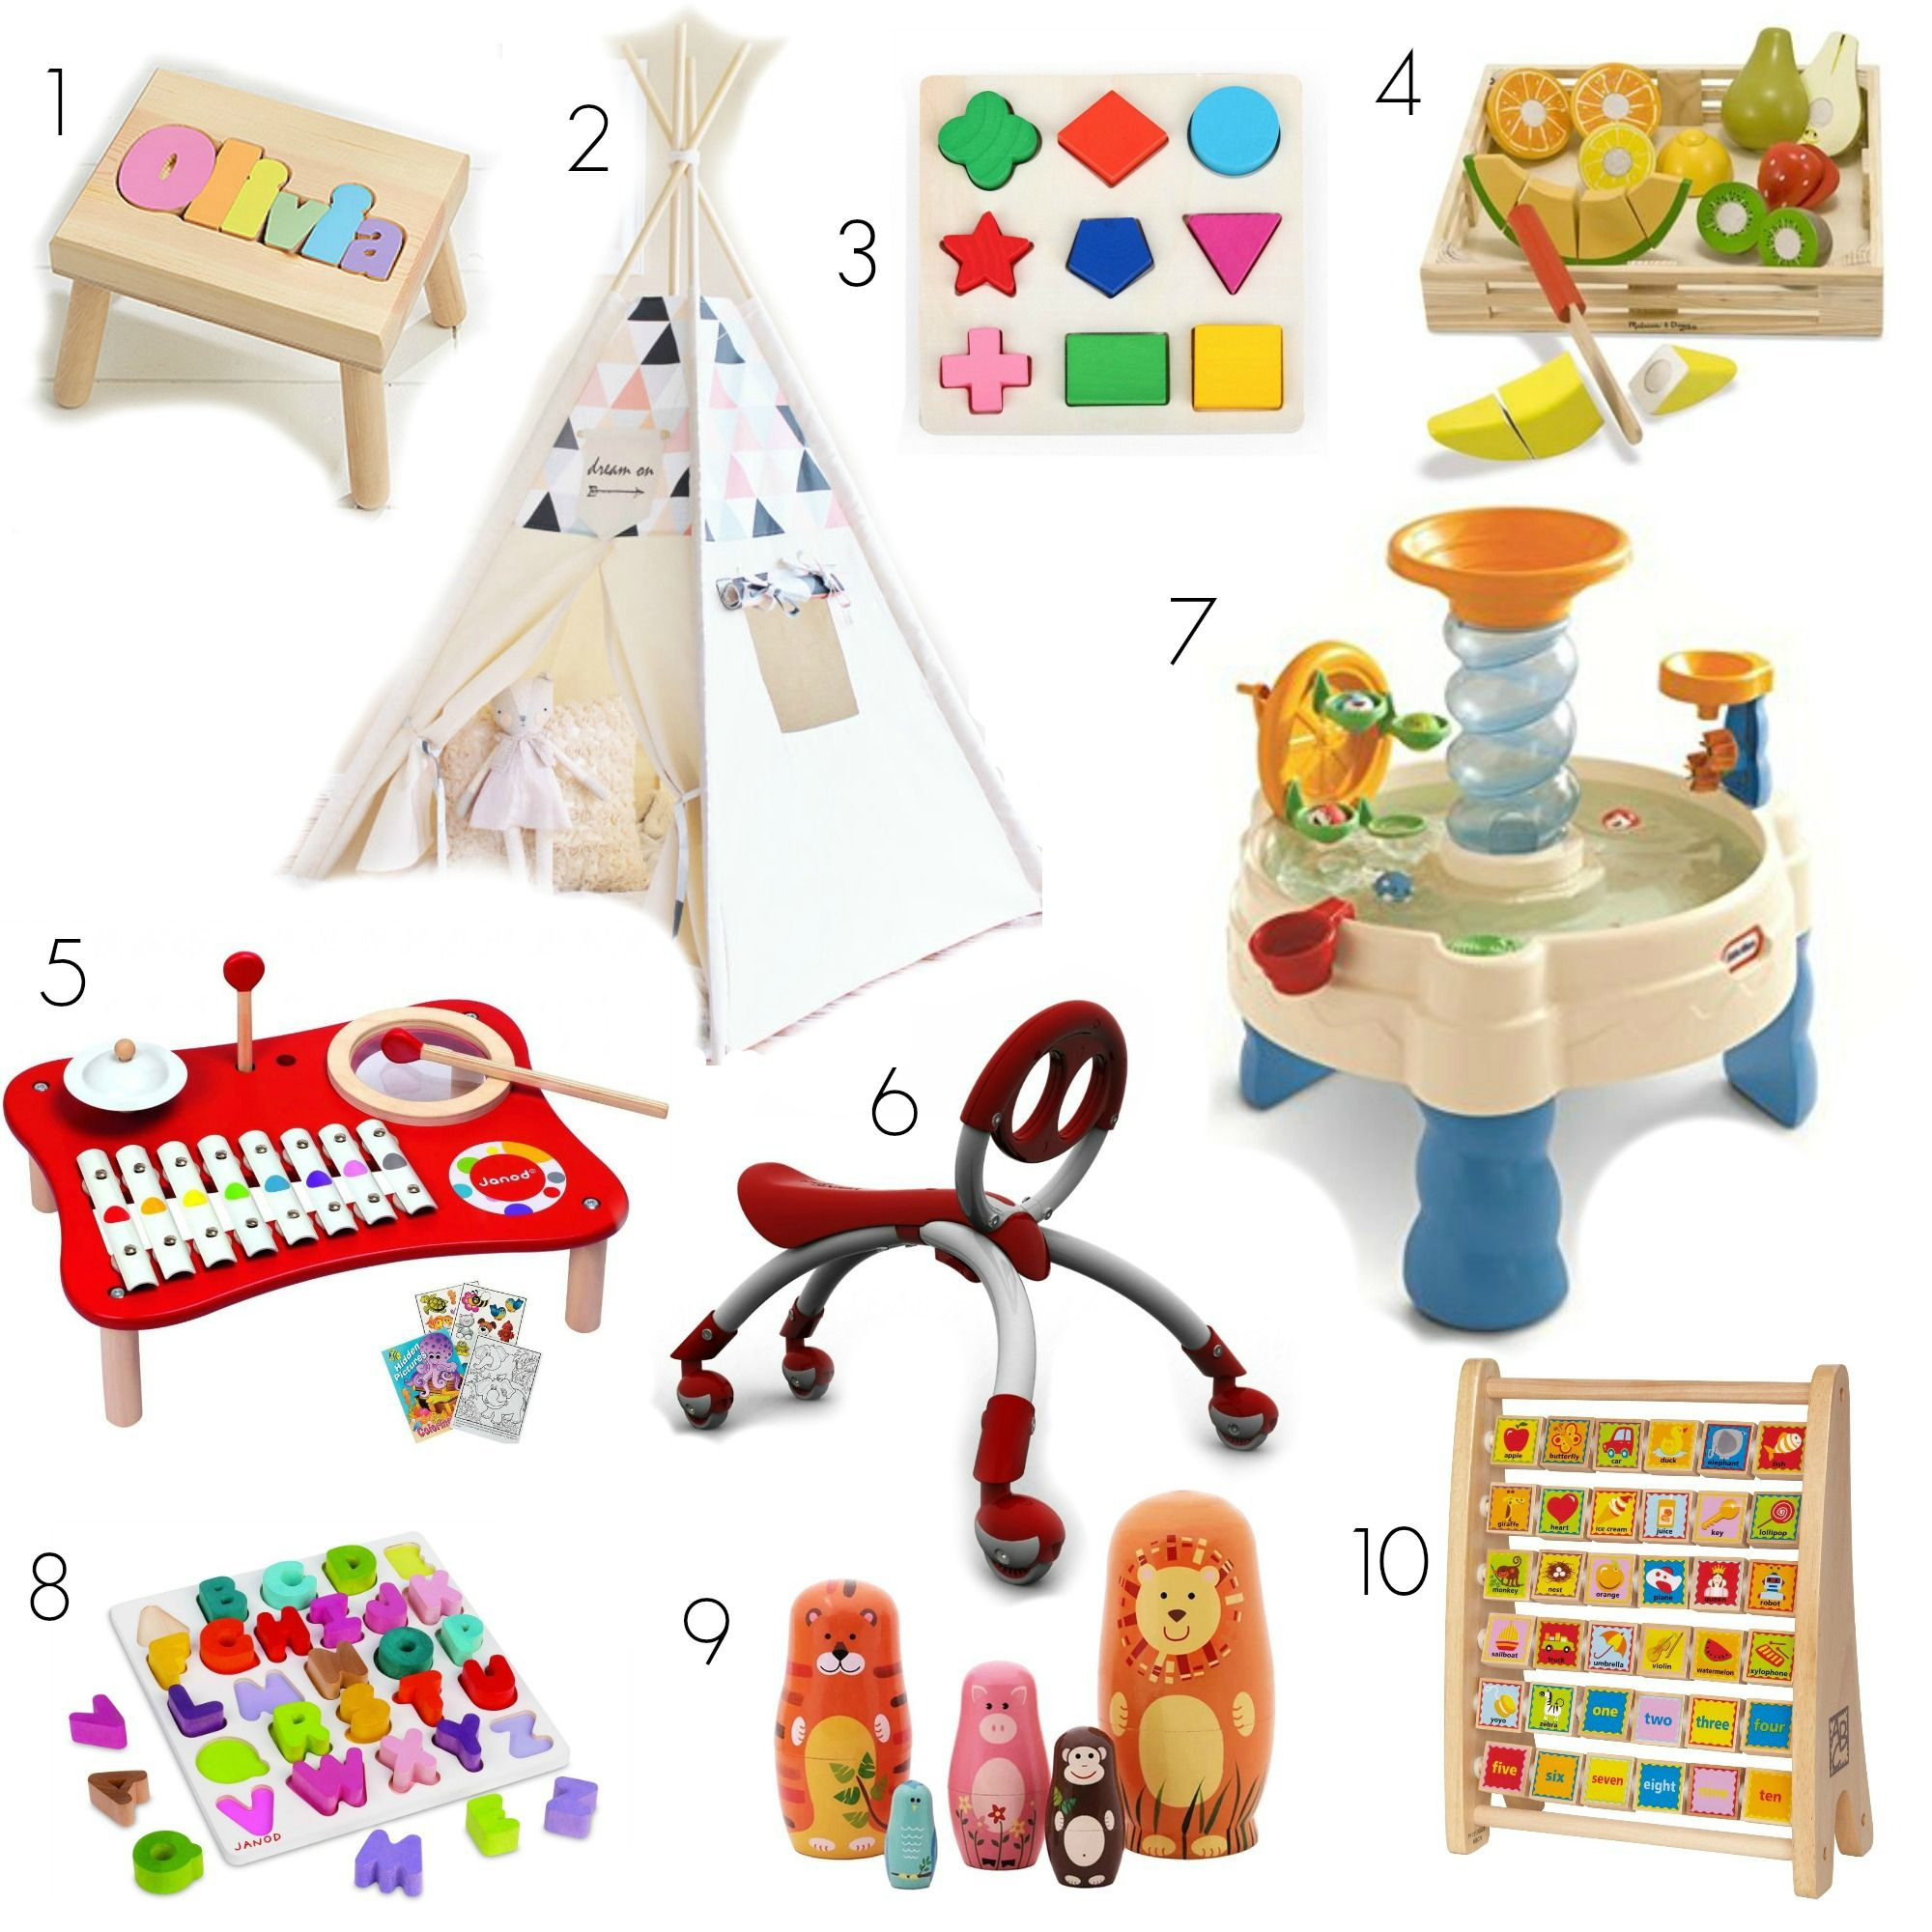 First birthday gift ideas that are fun, cute, and educational. And ...